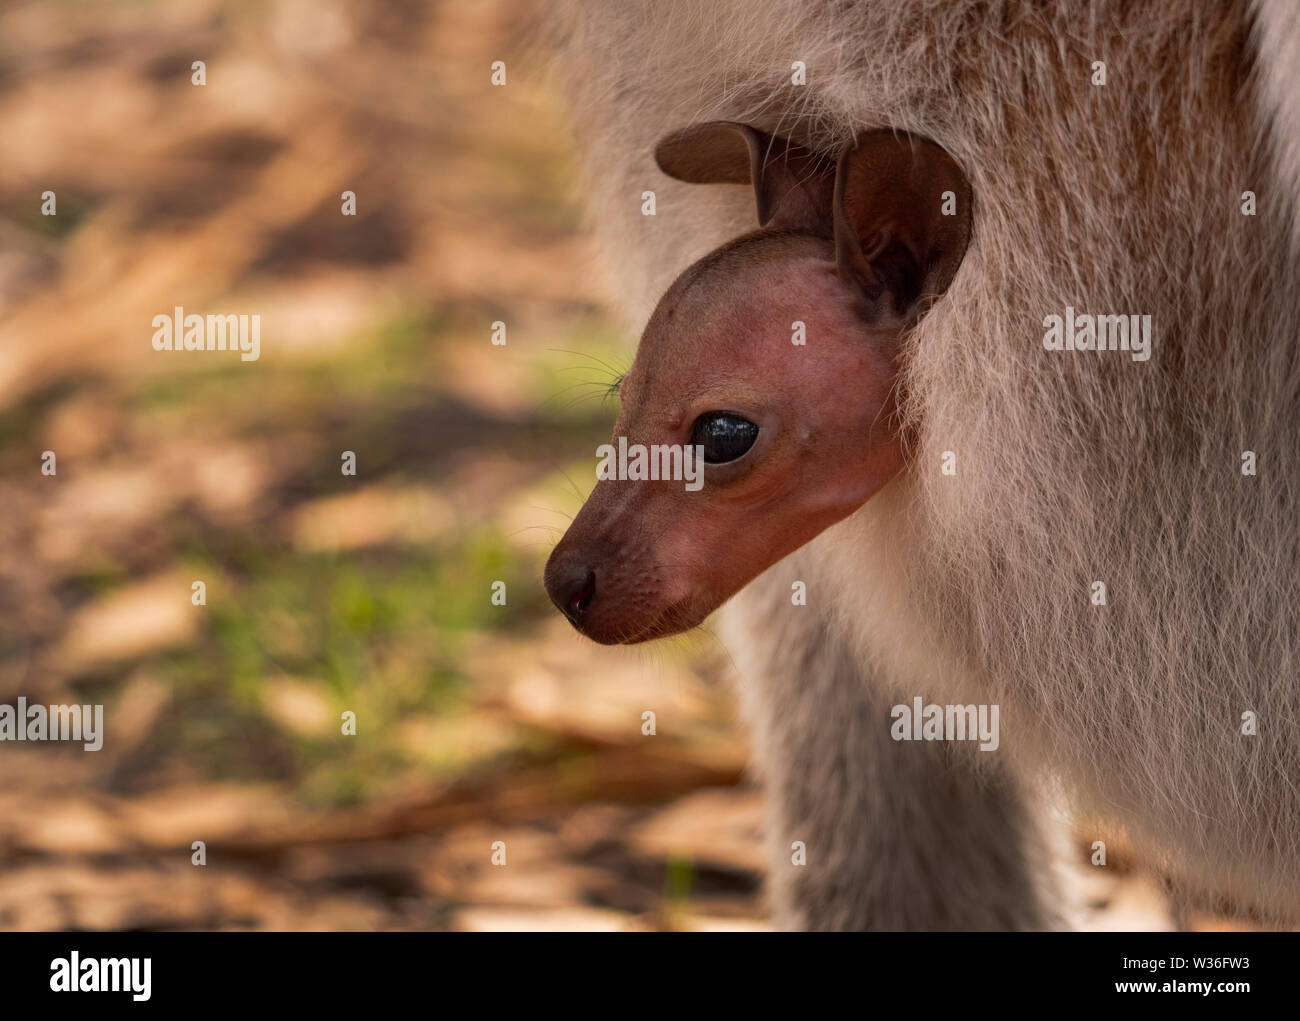 Baby joey Red-necked Wallaby, Macropus rufogriseus, poking its head out of its mother's pouch in near Dubbo Central West of New South Wales Australia. Stock Photo